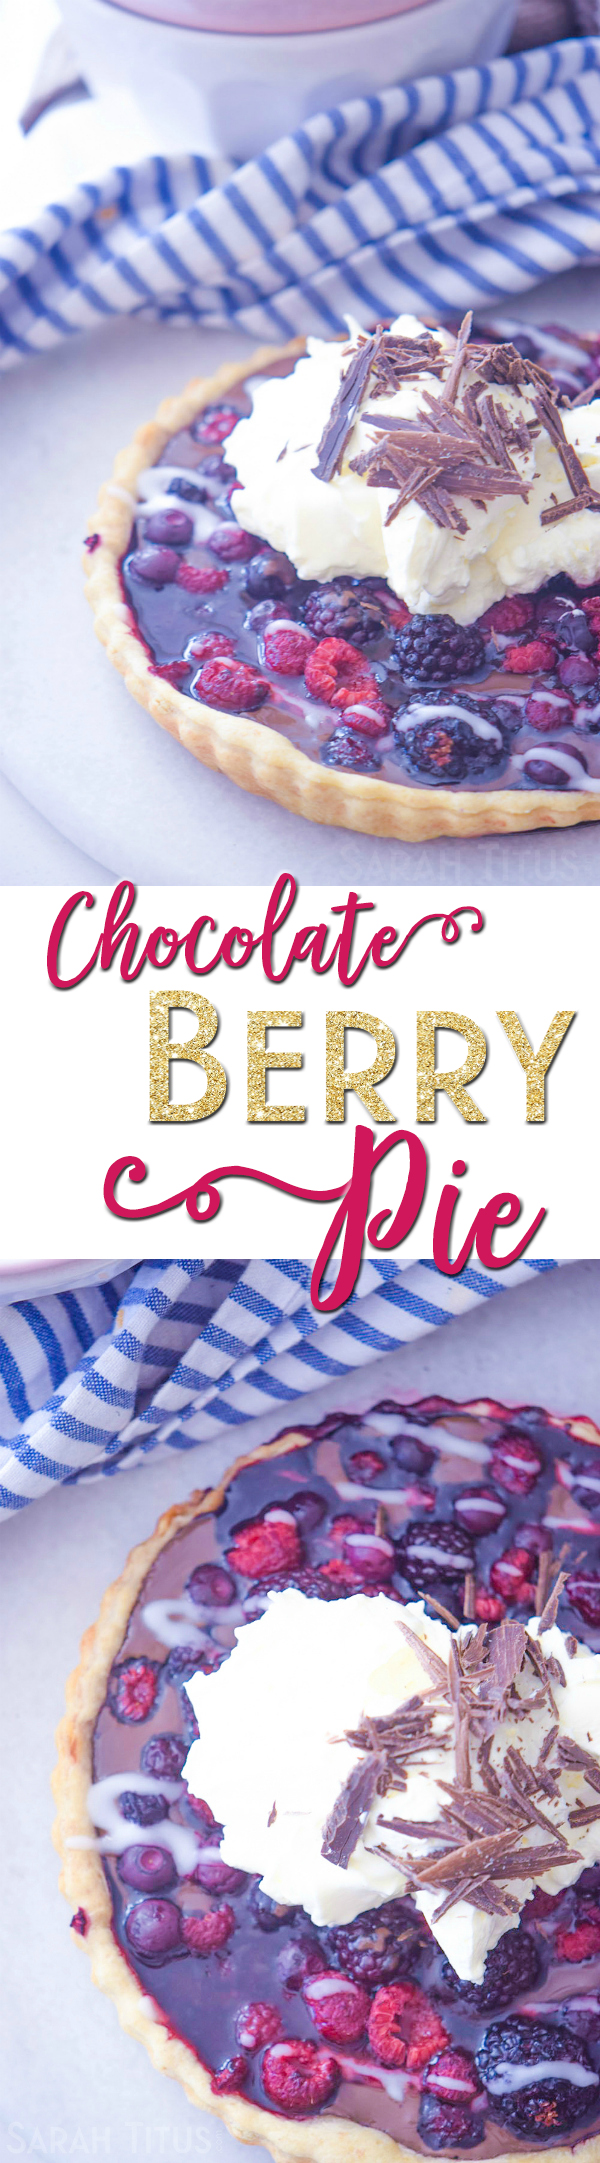 Everyone loves chocolate, am I right? This Chocolate Berry Pie is a non-traditional spin on chocolate pie paired with 3 types of berries. You'll adore it!